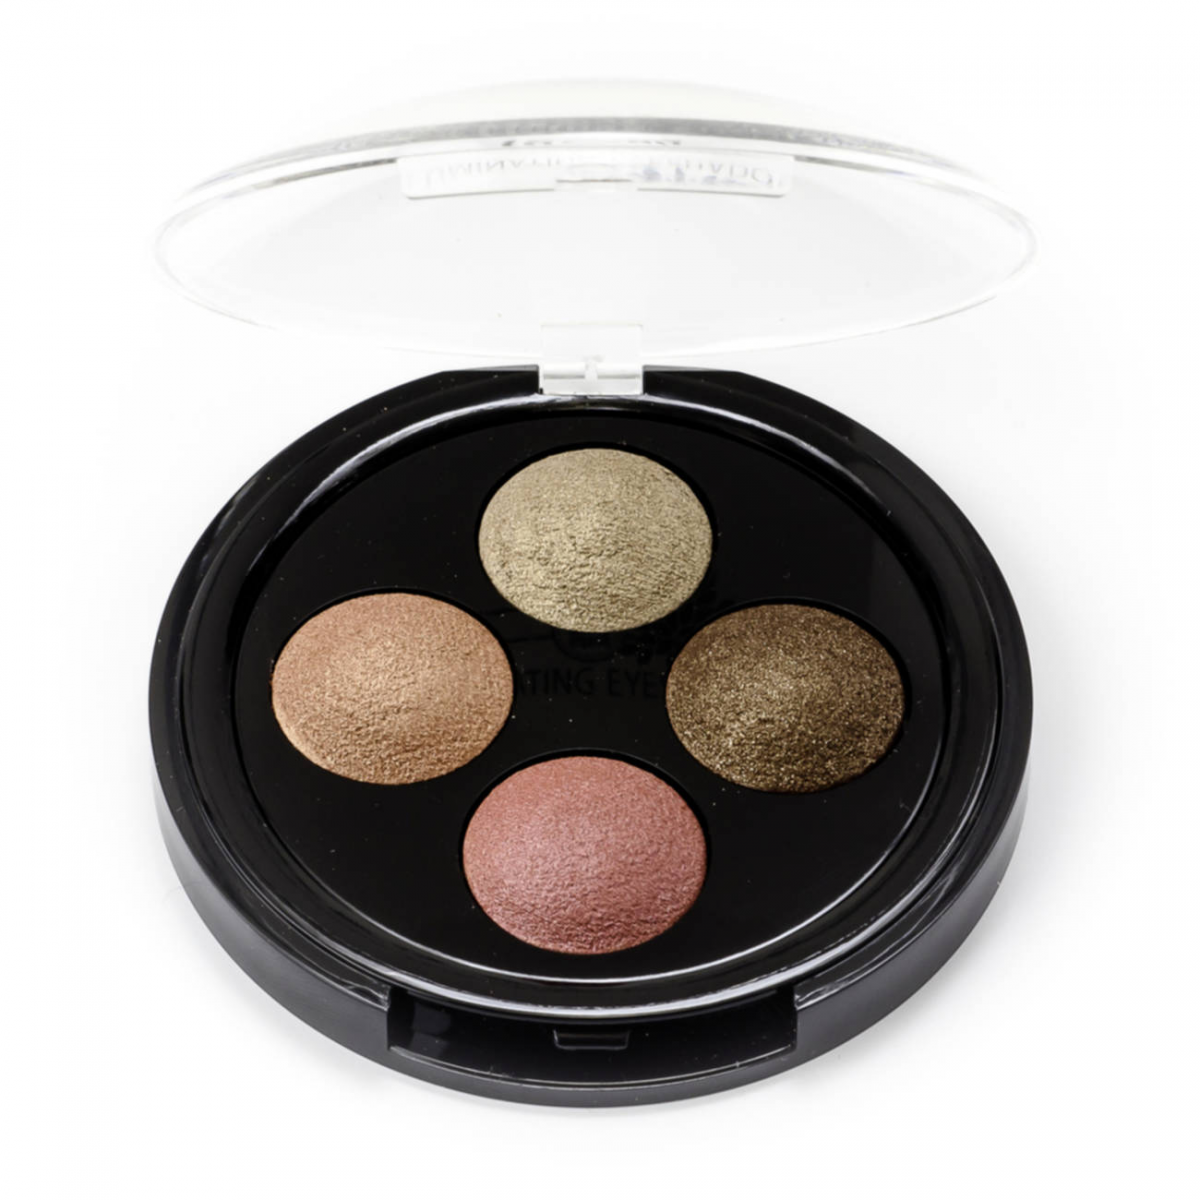 Illuminating Eyeshadow Quattro -Indian Dream 03- Dose 4 g - Lavera